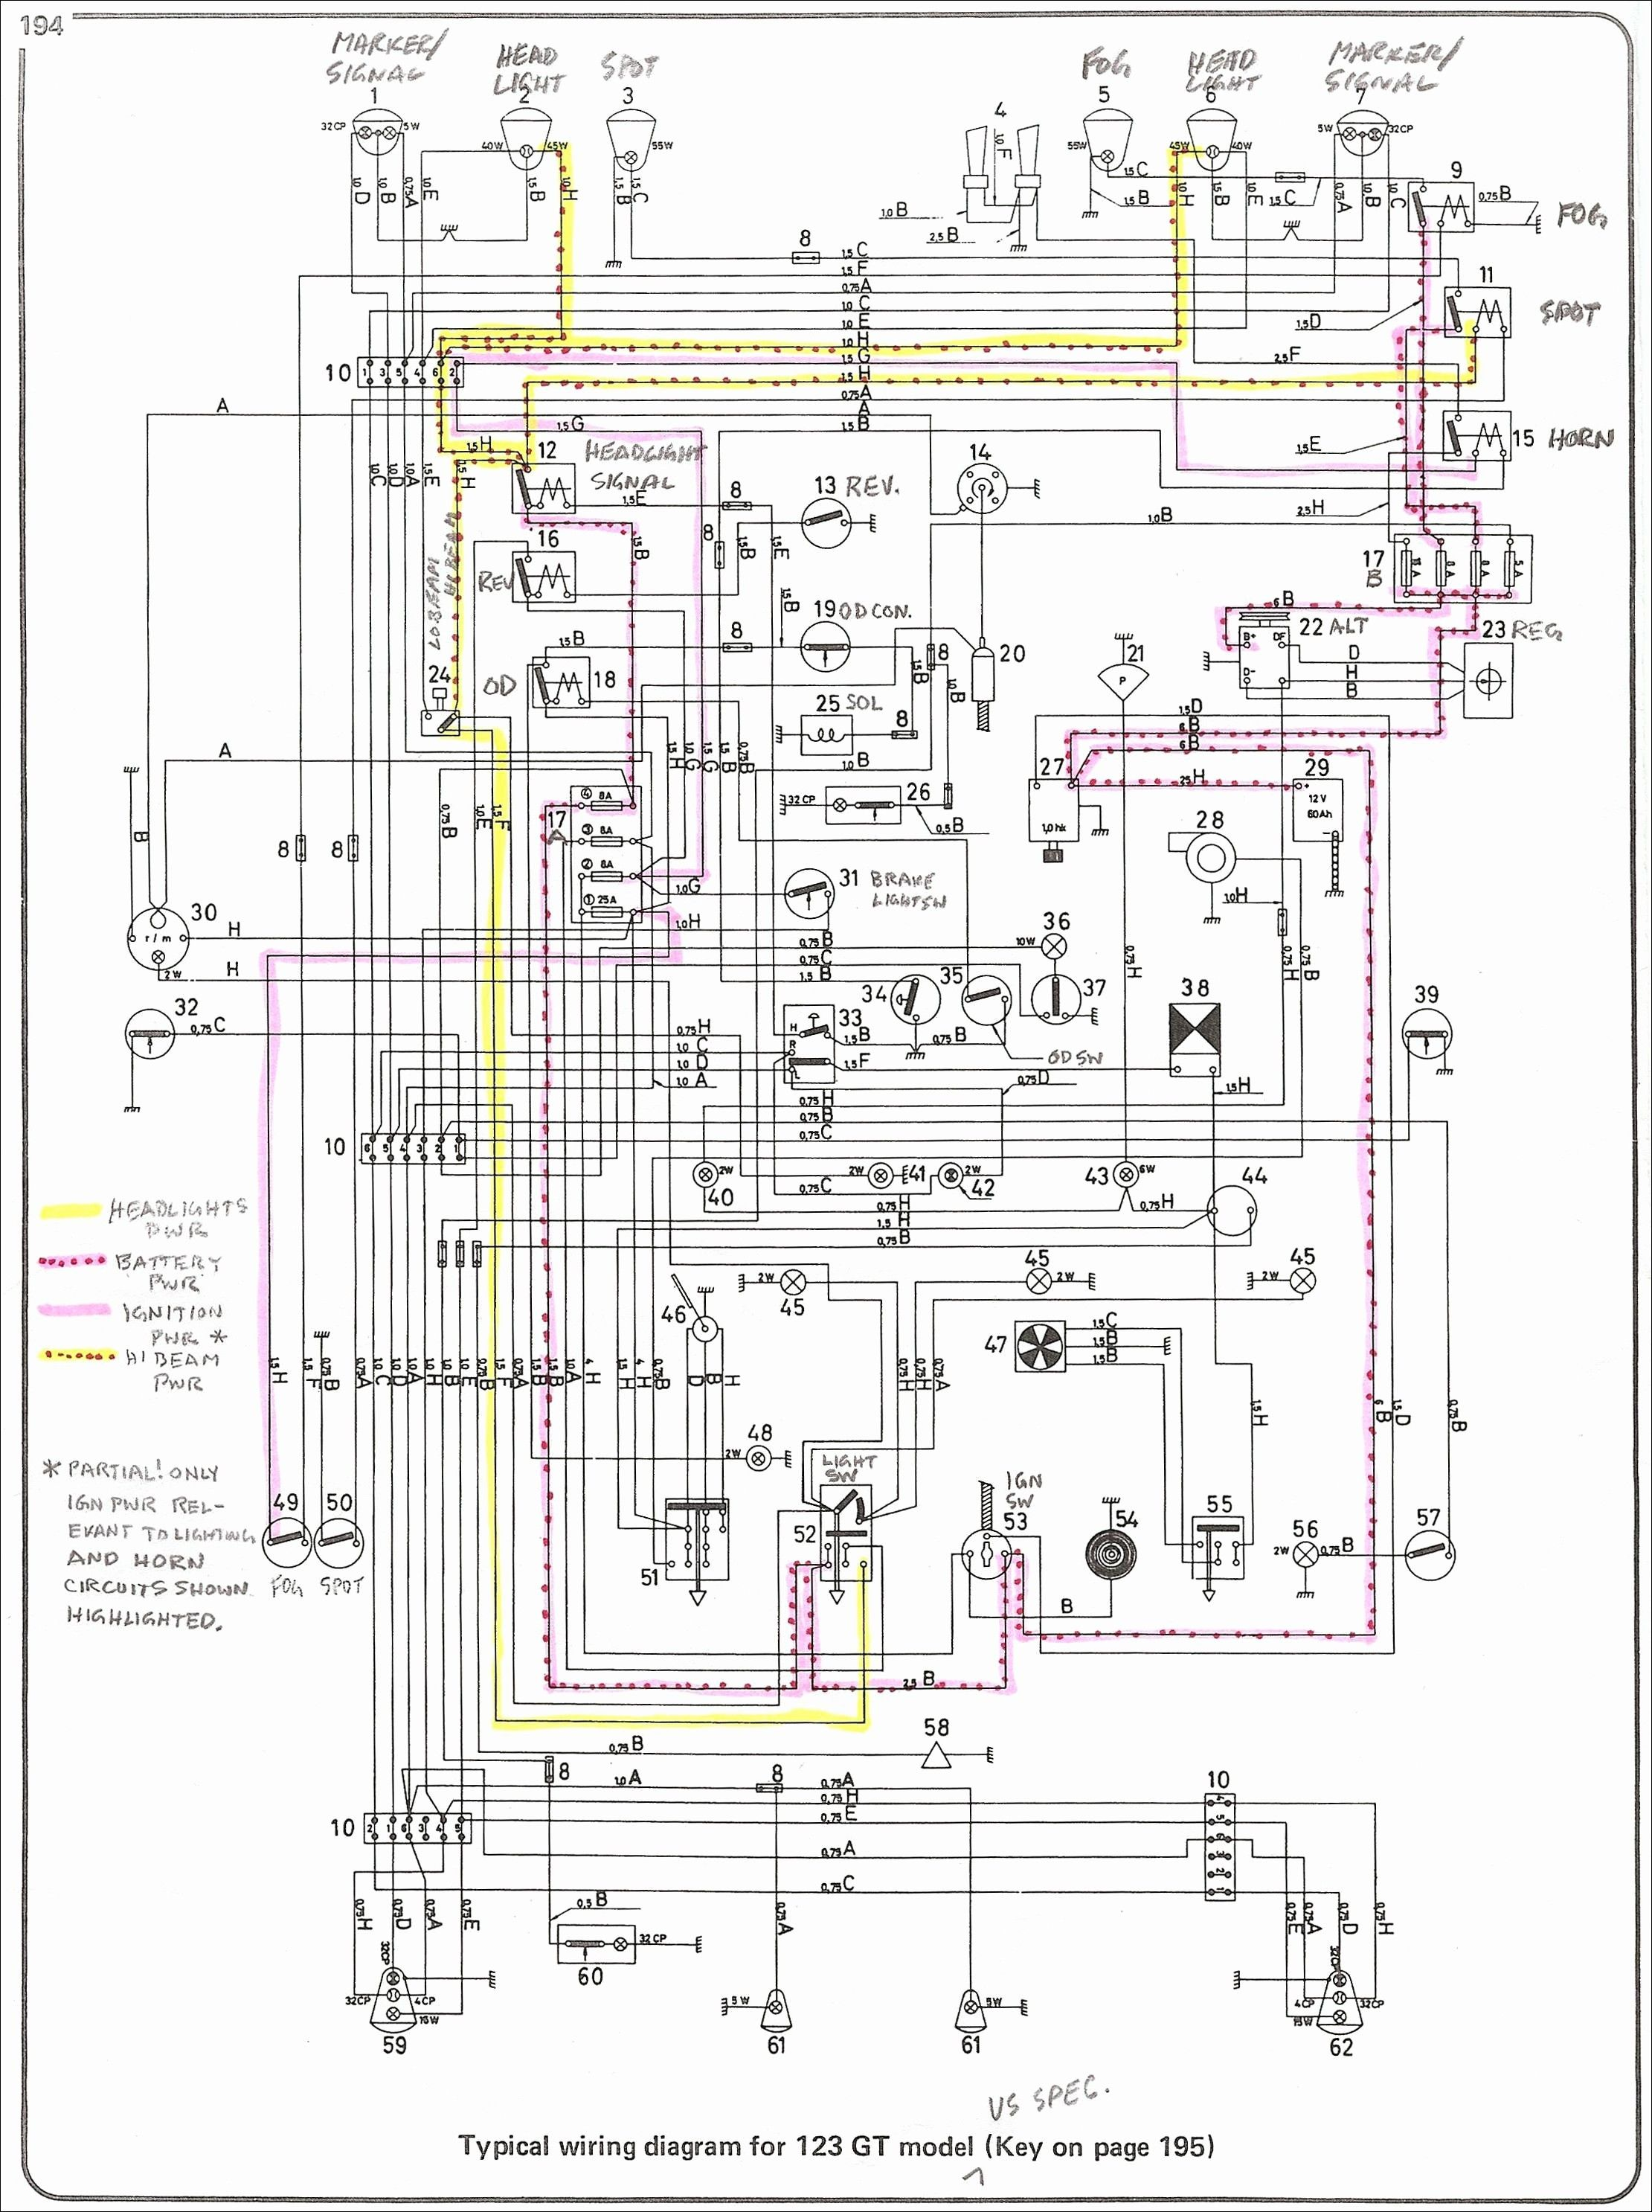 0 10 Volt Dimming Wiring Diagram In 2020 Low Voltage Outdoor Lighting Diagram 3 Way Switch Wiring